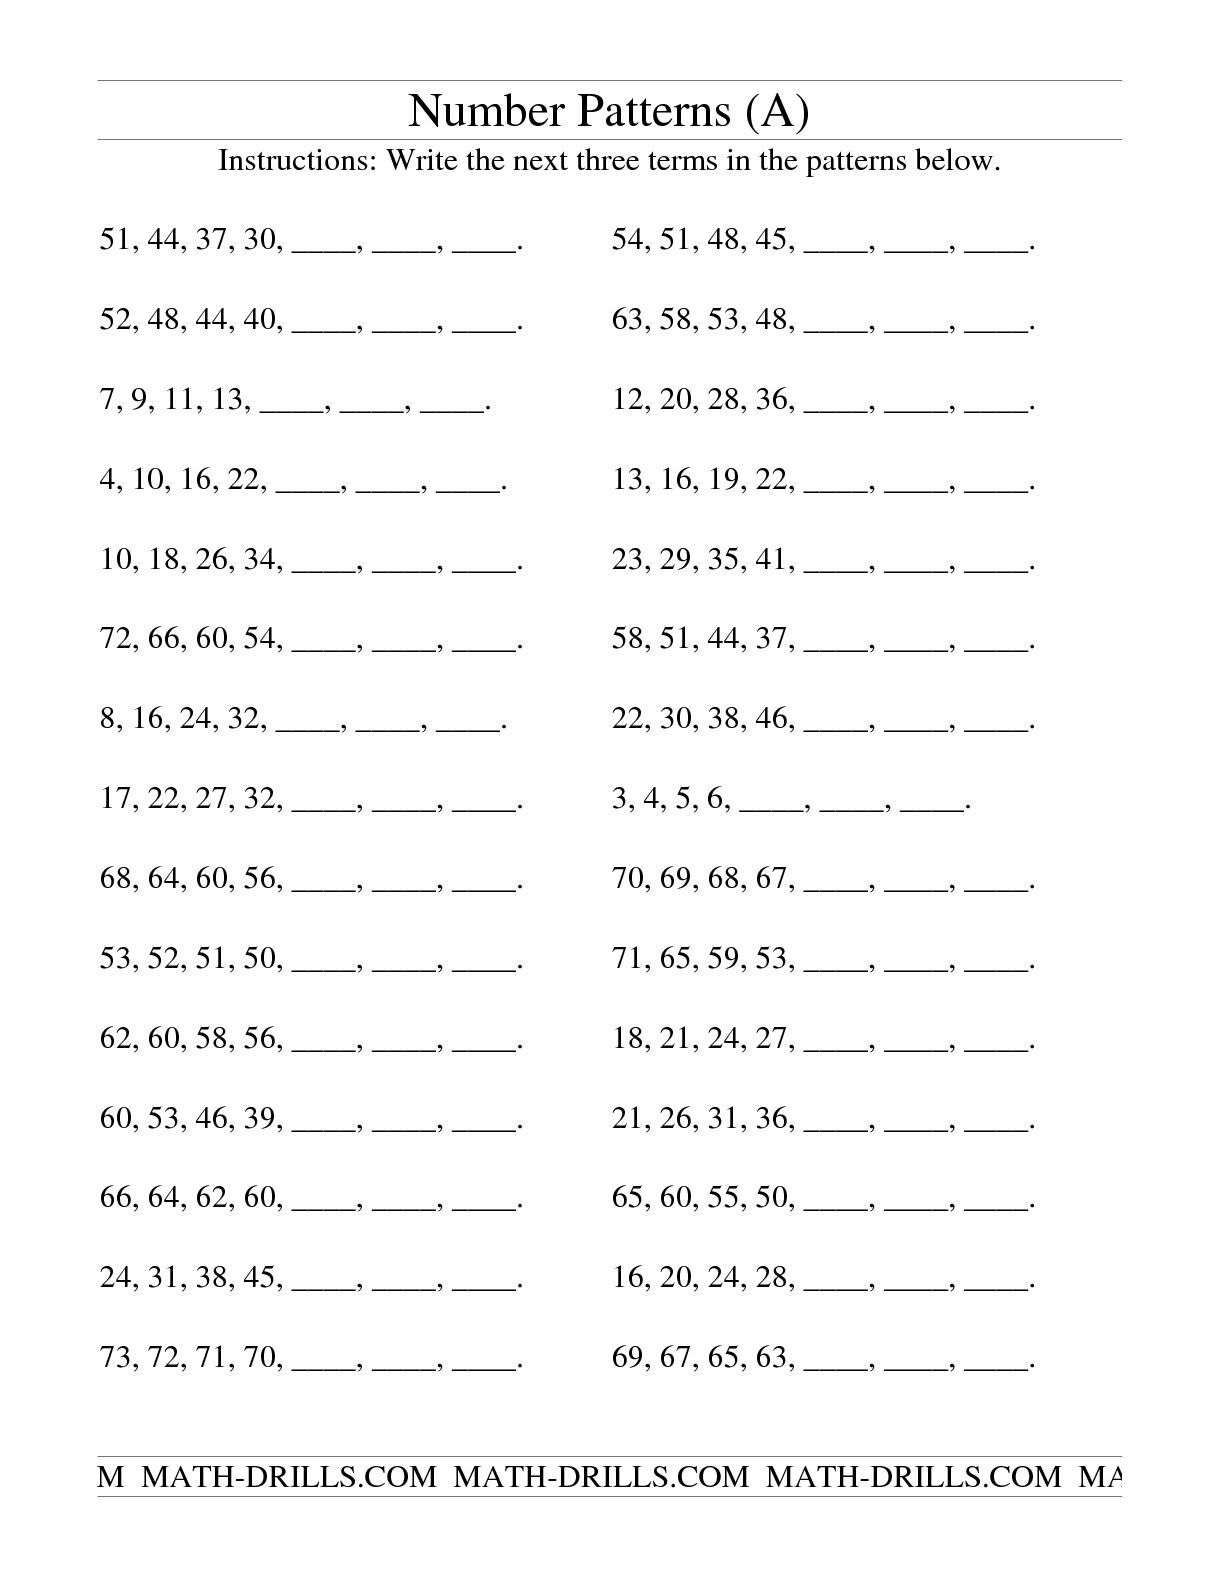 worksheet Math Patterns Worksheet the growing and shrinking number patterns a math help patterning worksheet a